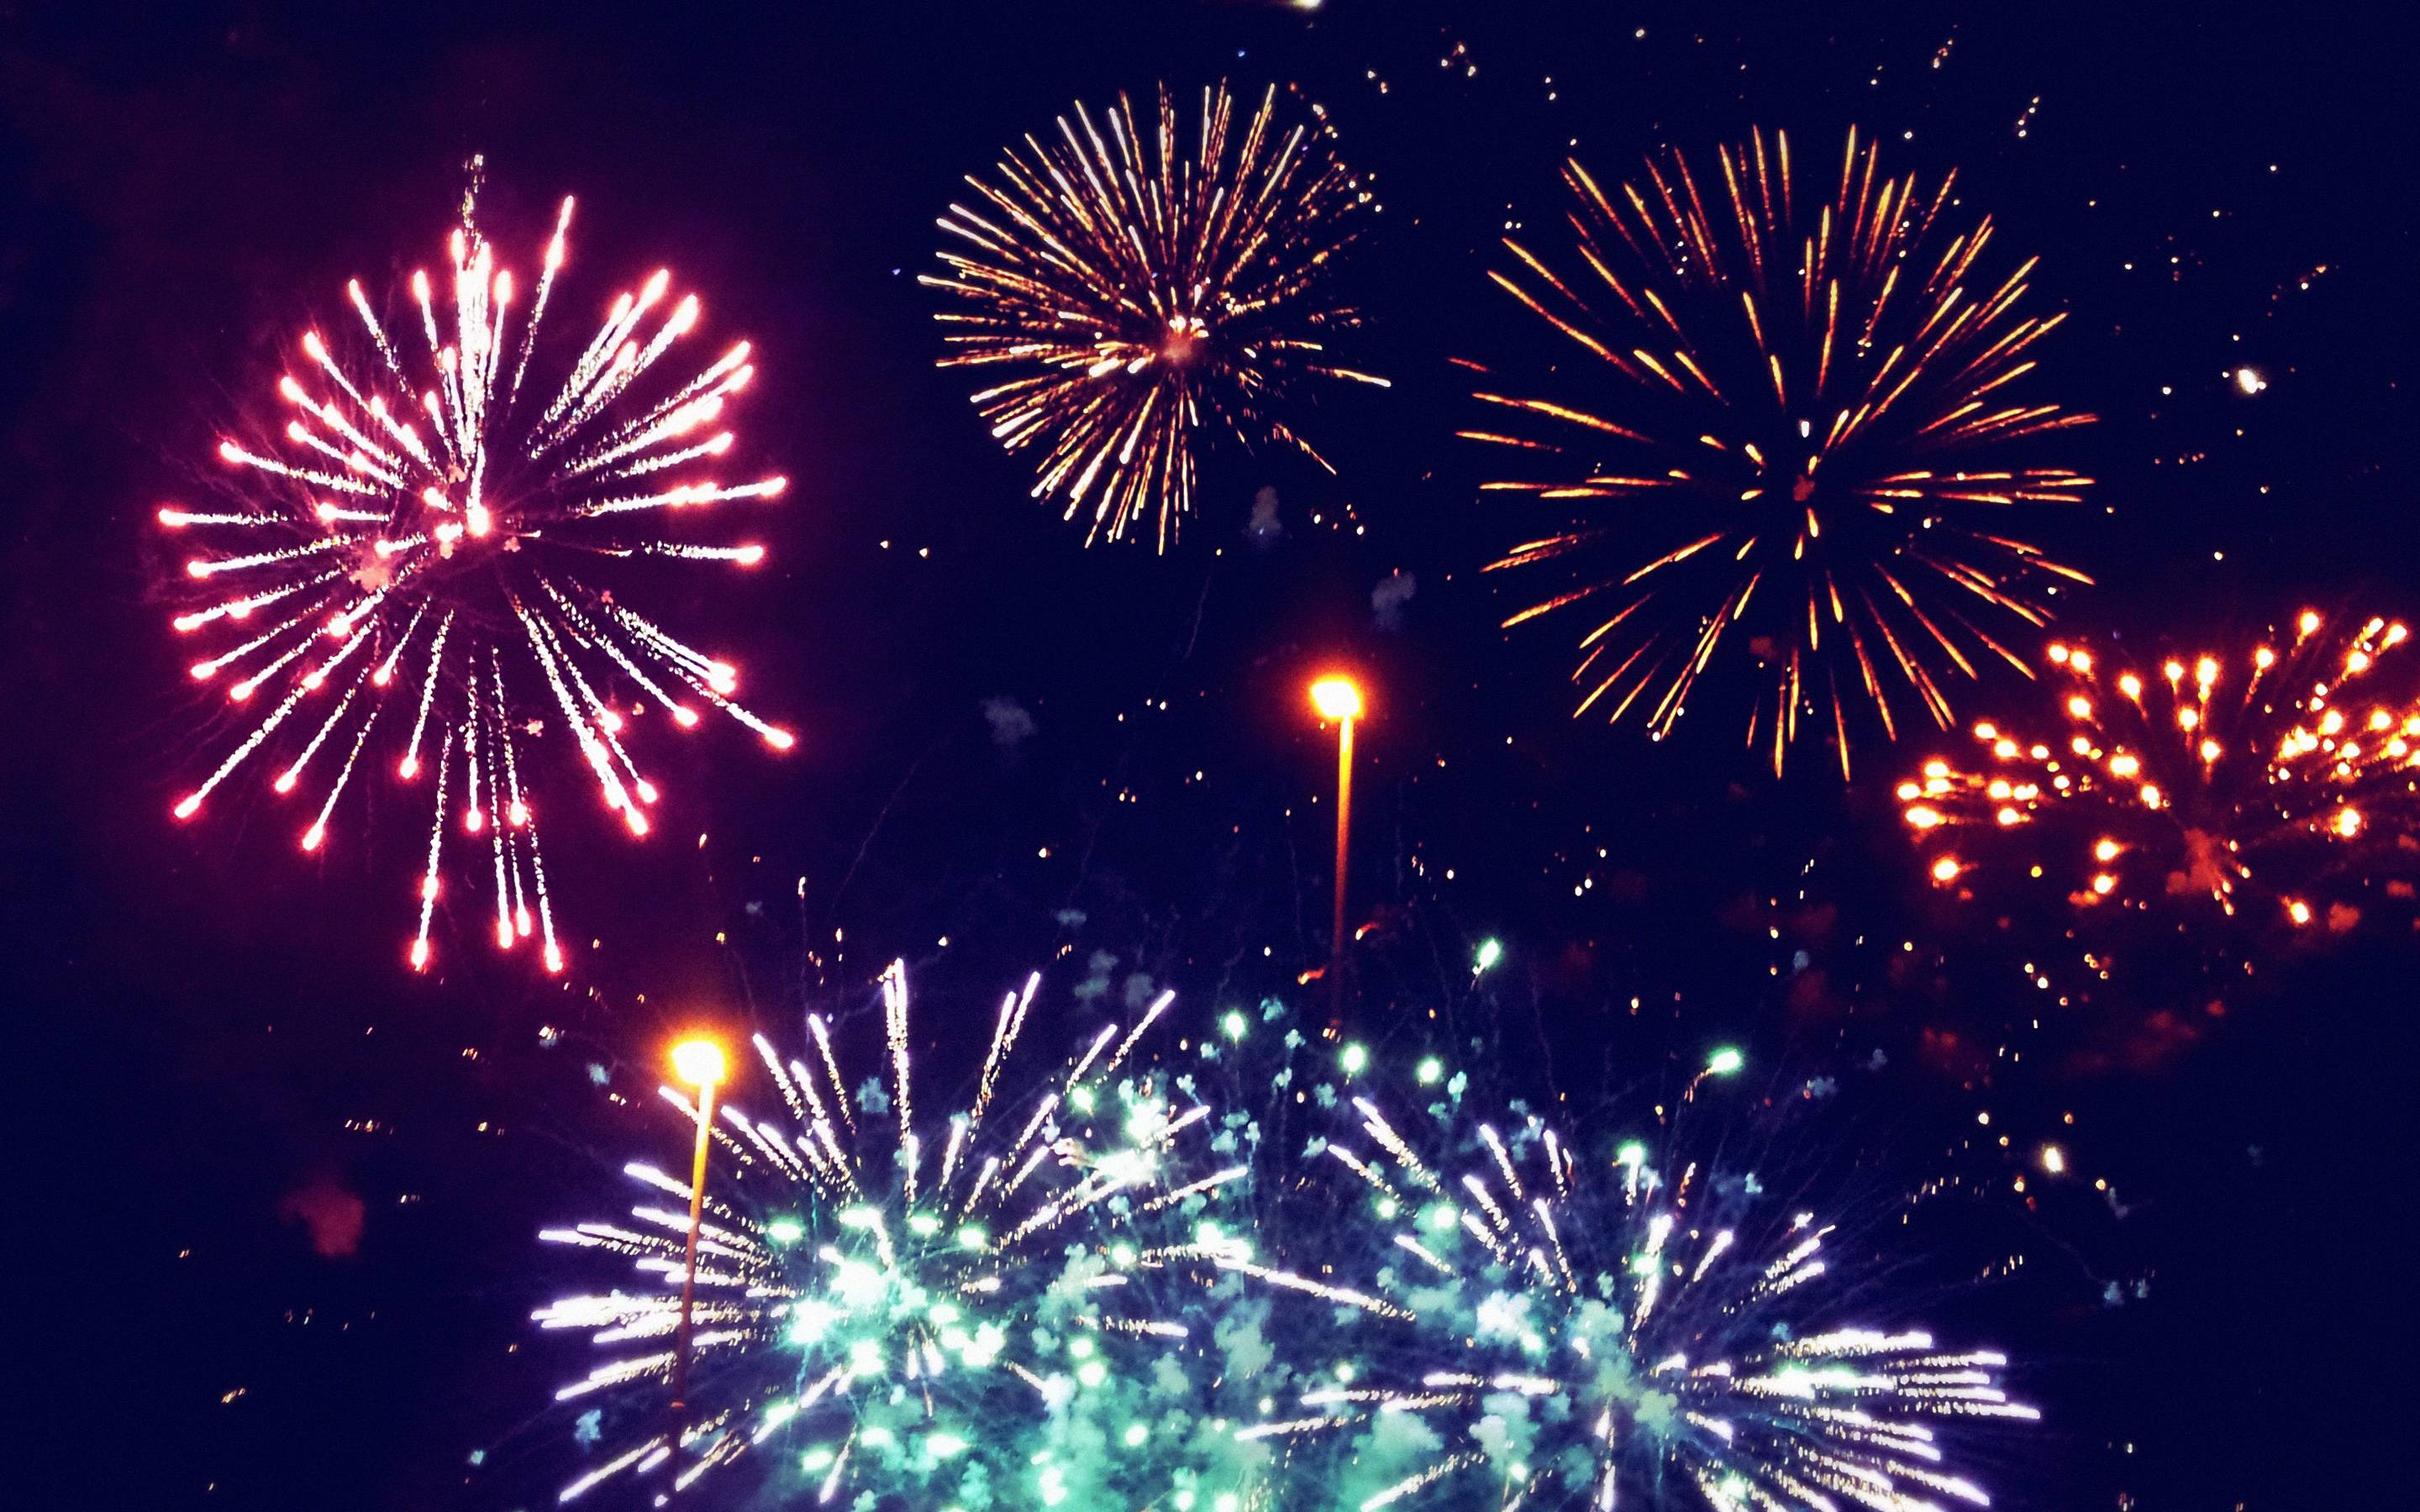 fireworks wallpapers - wallpaper cave